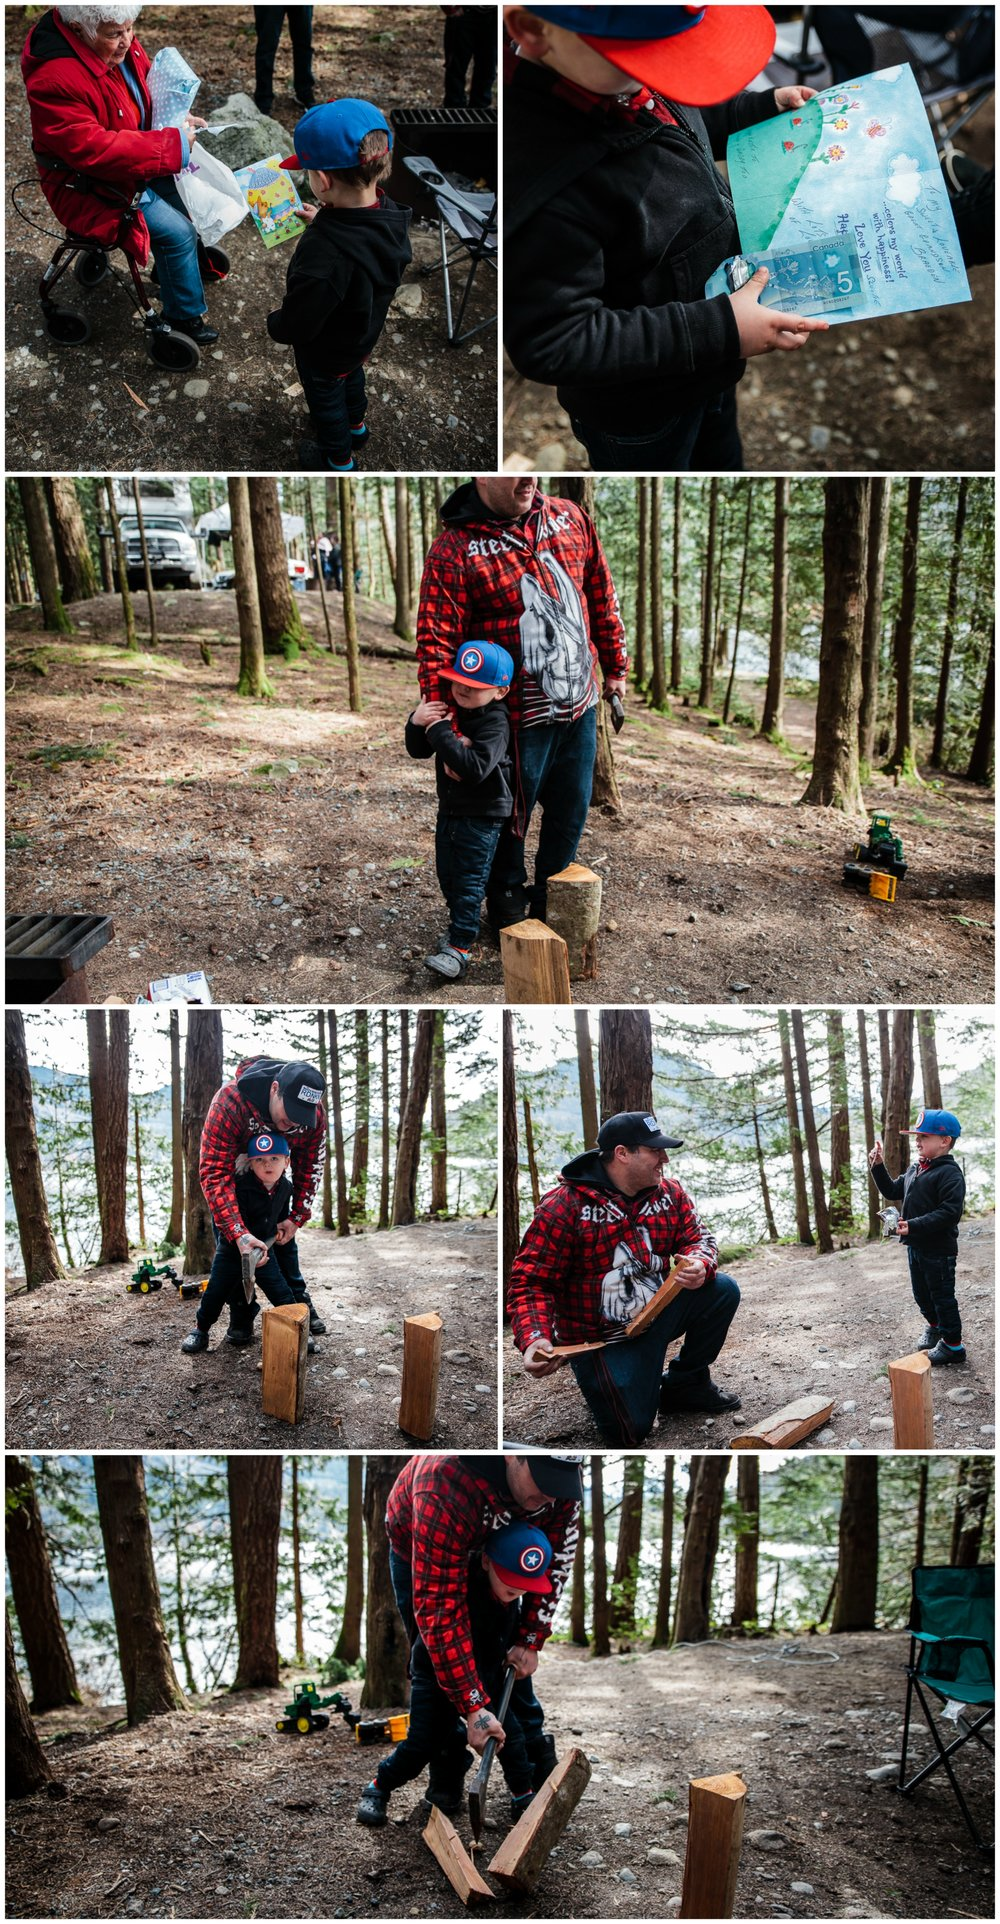 Wood chopping with father and son during camping trip.jpg